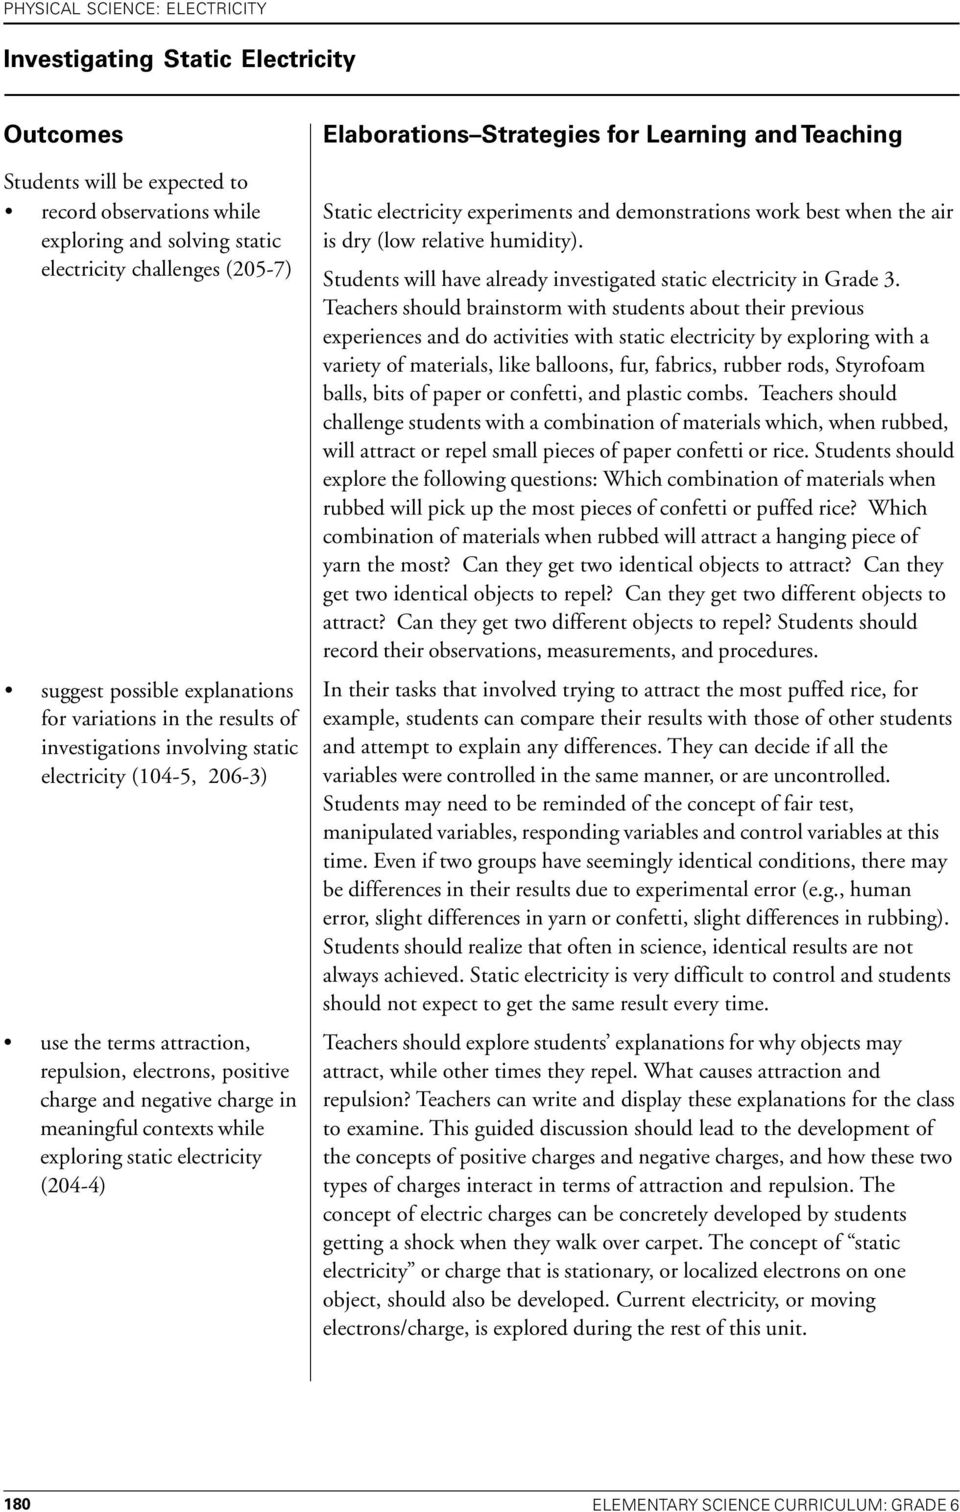 Grade 6 Life Science Diversity Of Pdf Bitesize Physics Series And Parallel Circuits Revision Page 4 While Exploring Static Electricity 204 Elaborations Strategies For Learning Teaching